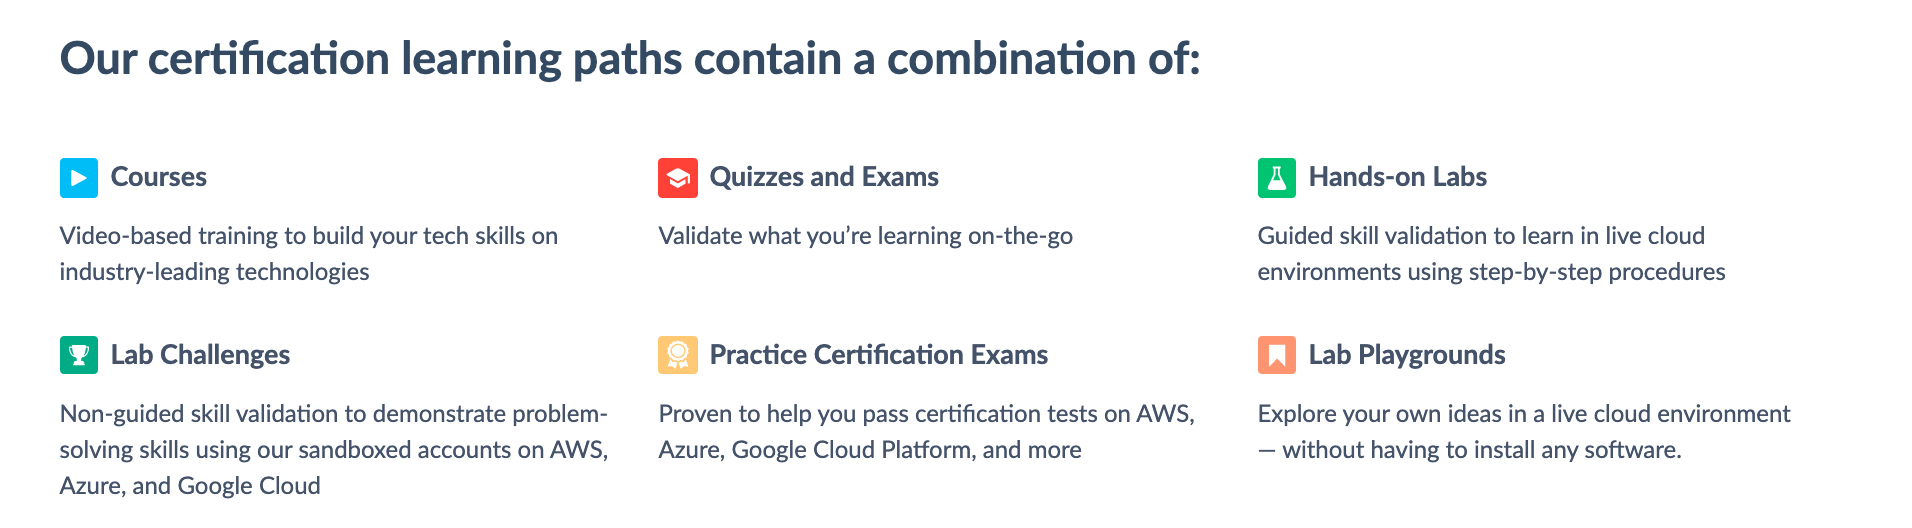 Cloud Academy's Certification Learning Paths